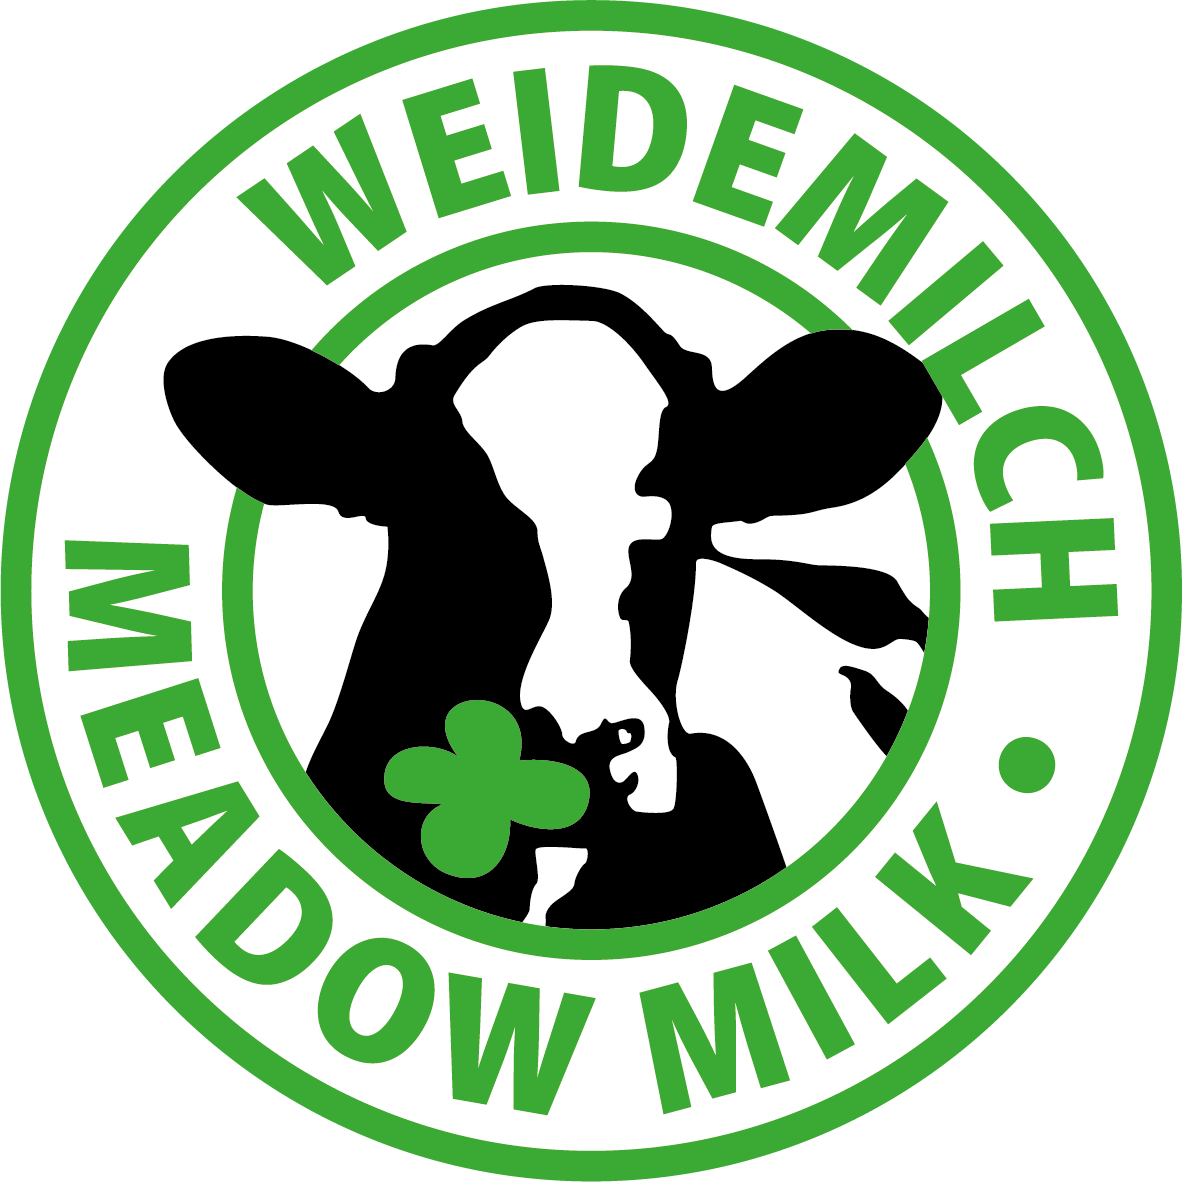 DE EN Weidemilch Meadow Milk